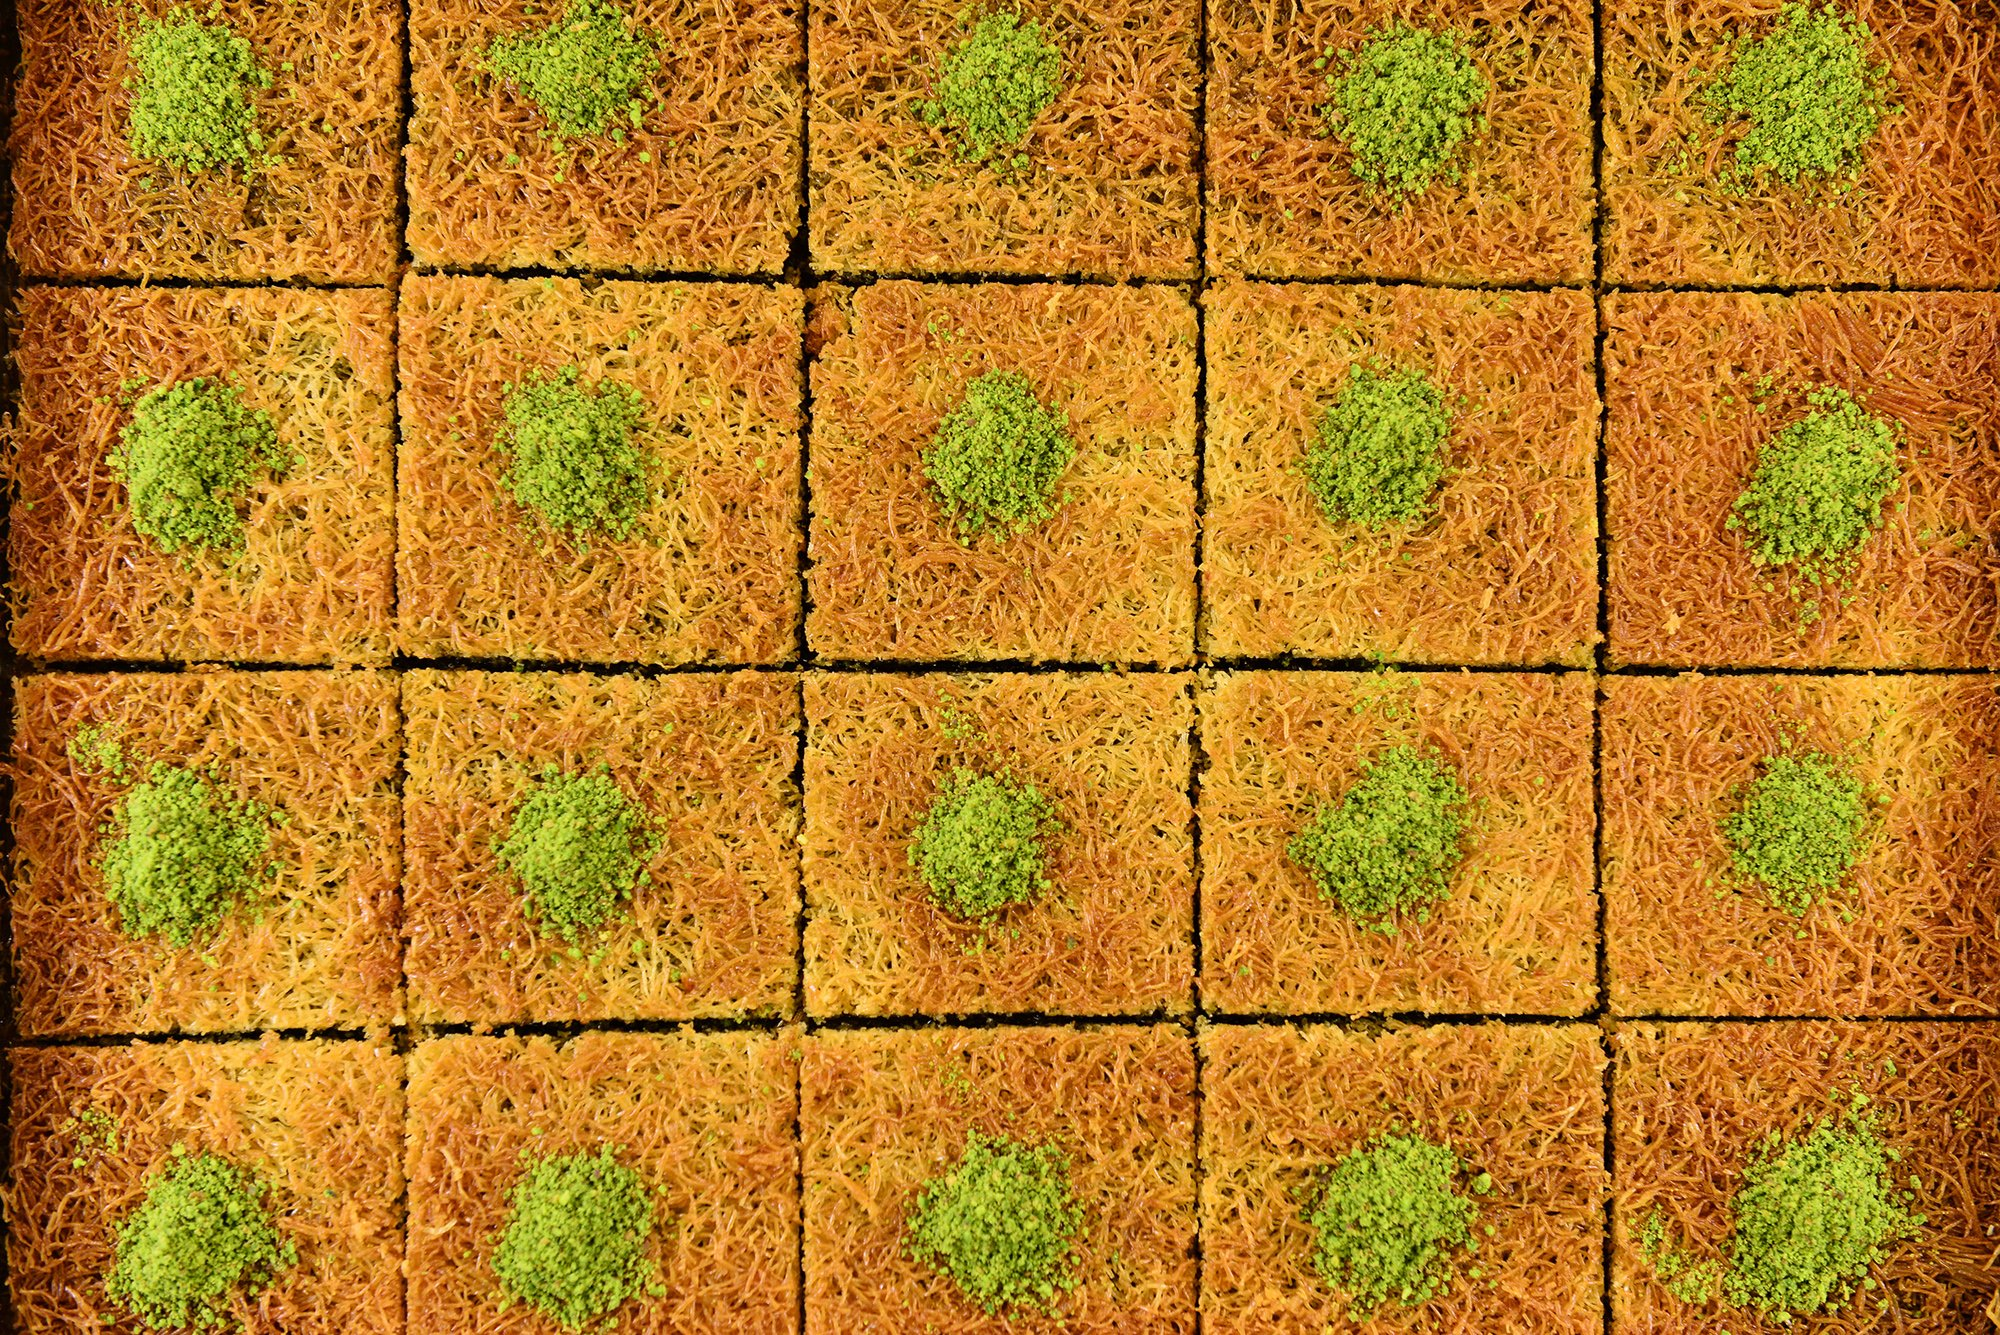 Tel kadayıf, which means tiny shreds, is one of the most well-known Turkish desserts. (iStock Photo)